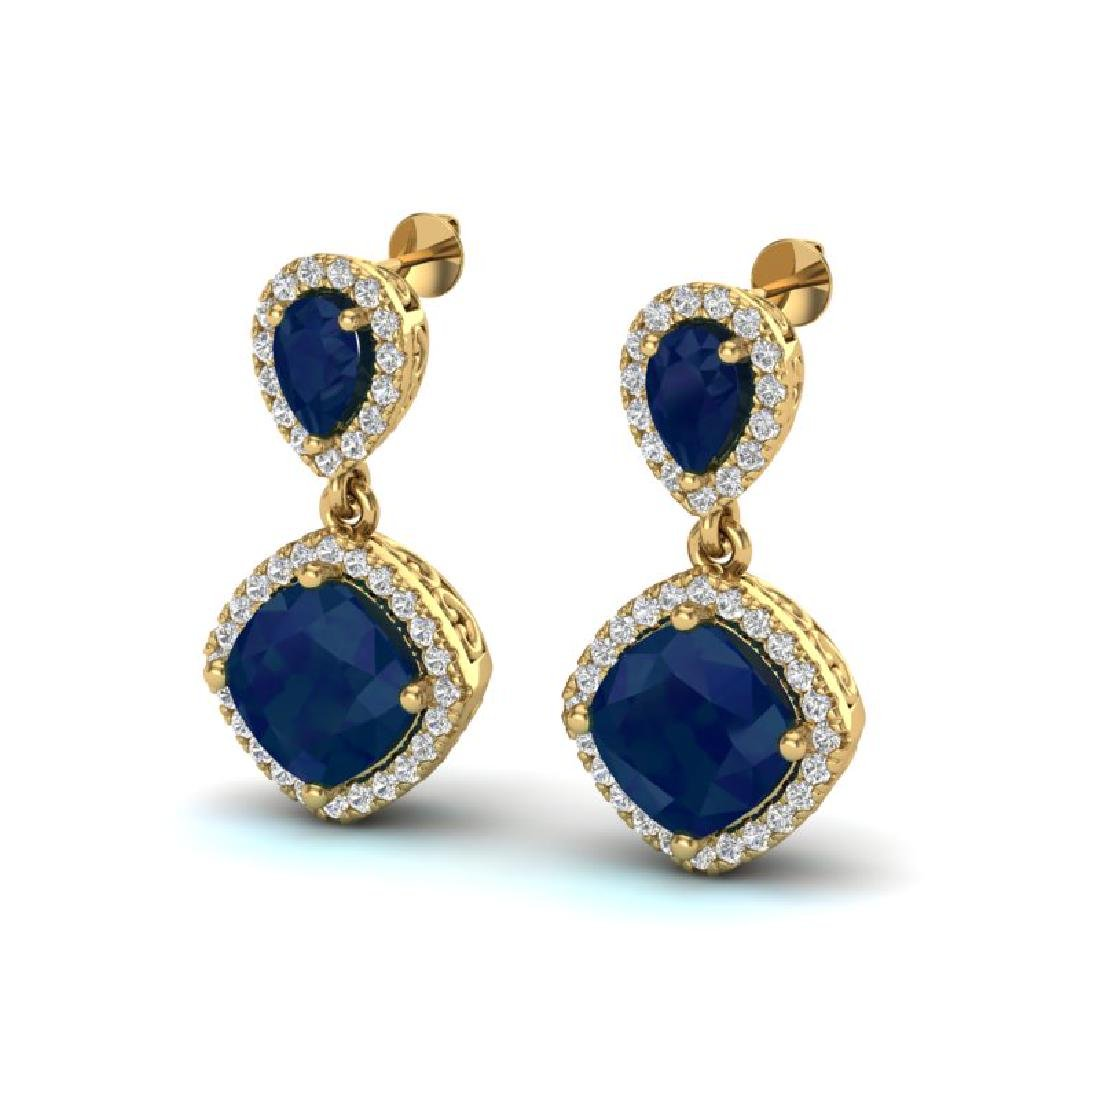 7 CTW Sapphire & Micro Pave VS/SI Diamond Earrings